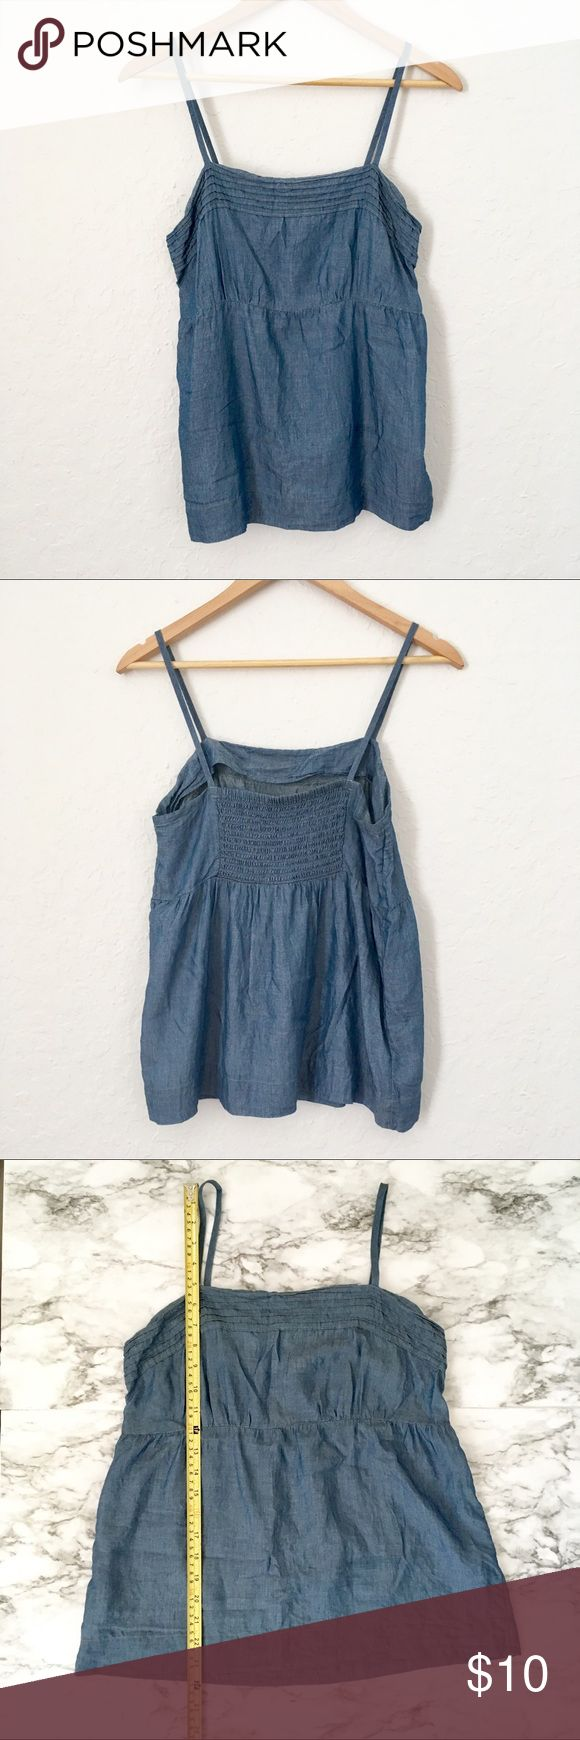 LOFT chambray spaghetti strap tank top Chambray tank top, very light and airy, super cute paired with white jeans. Straps are fixed length. LOFT Tops Tank Tops